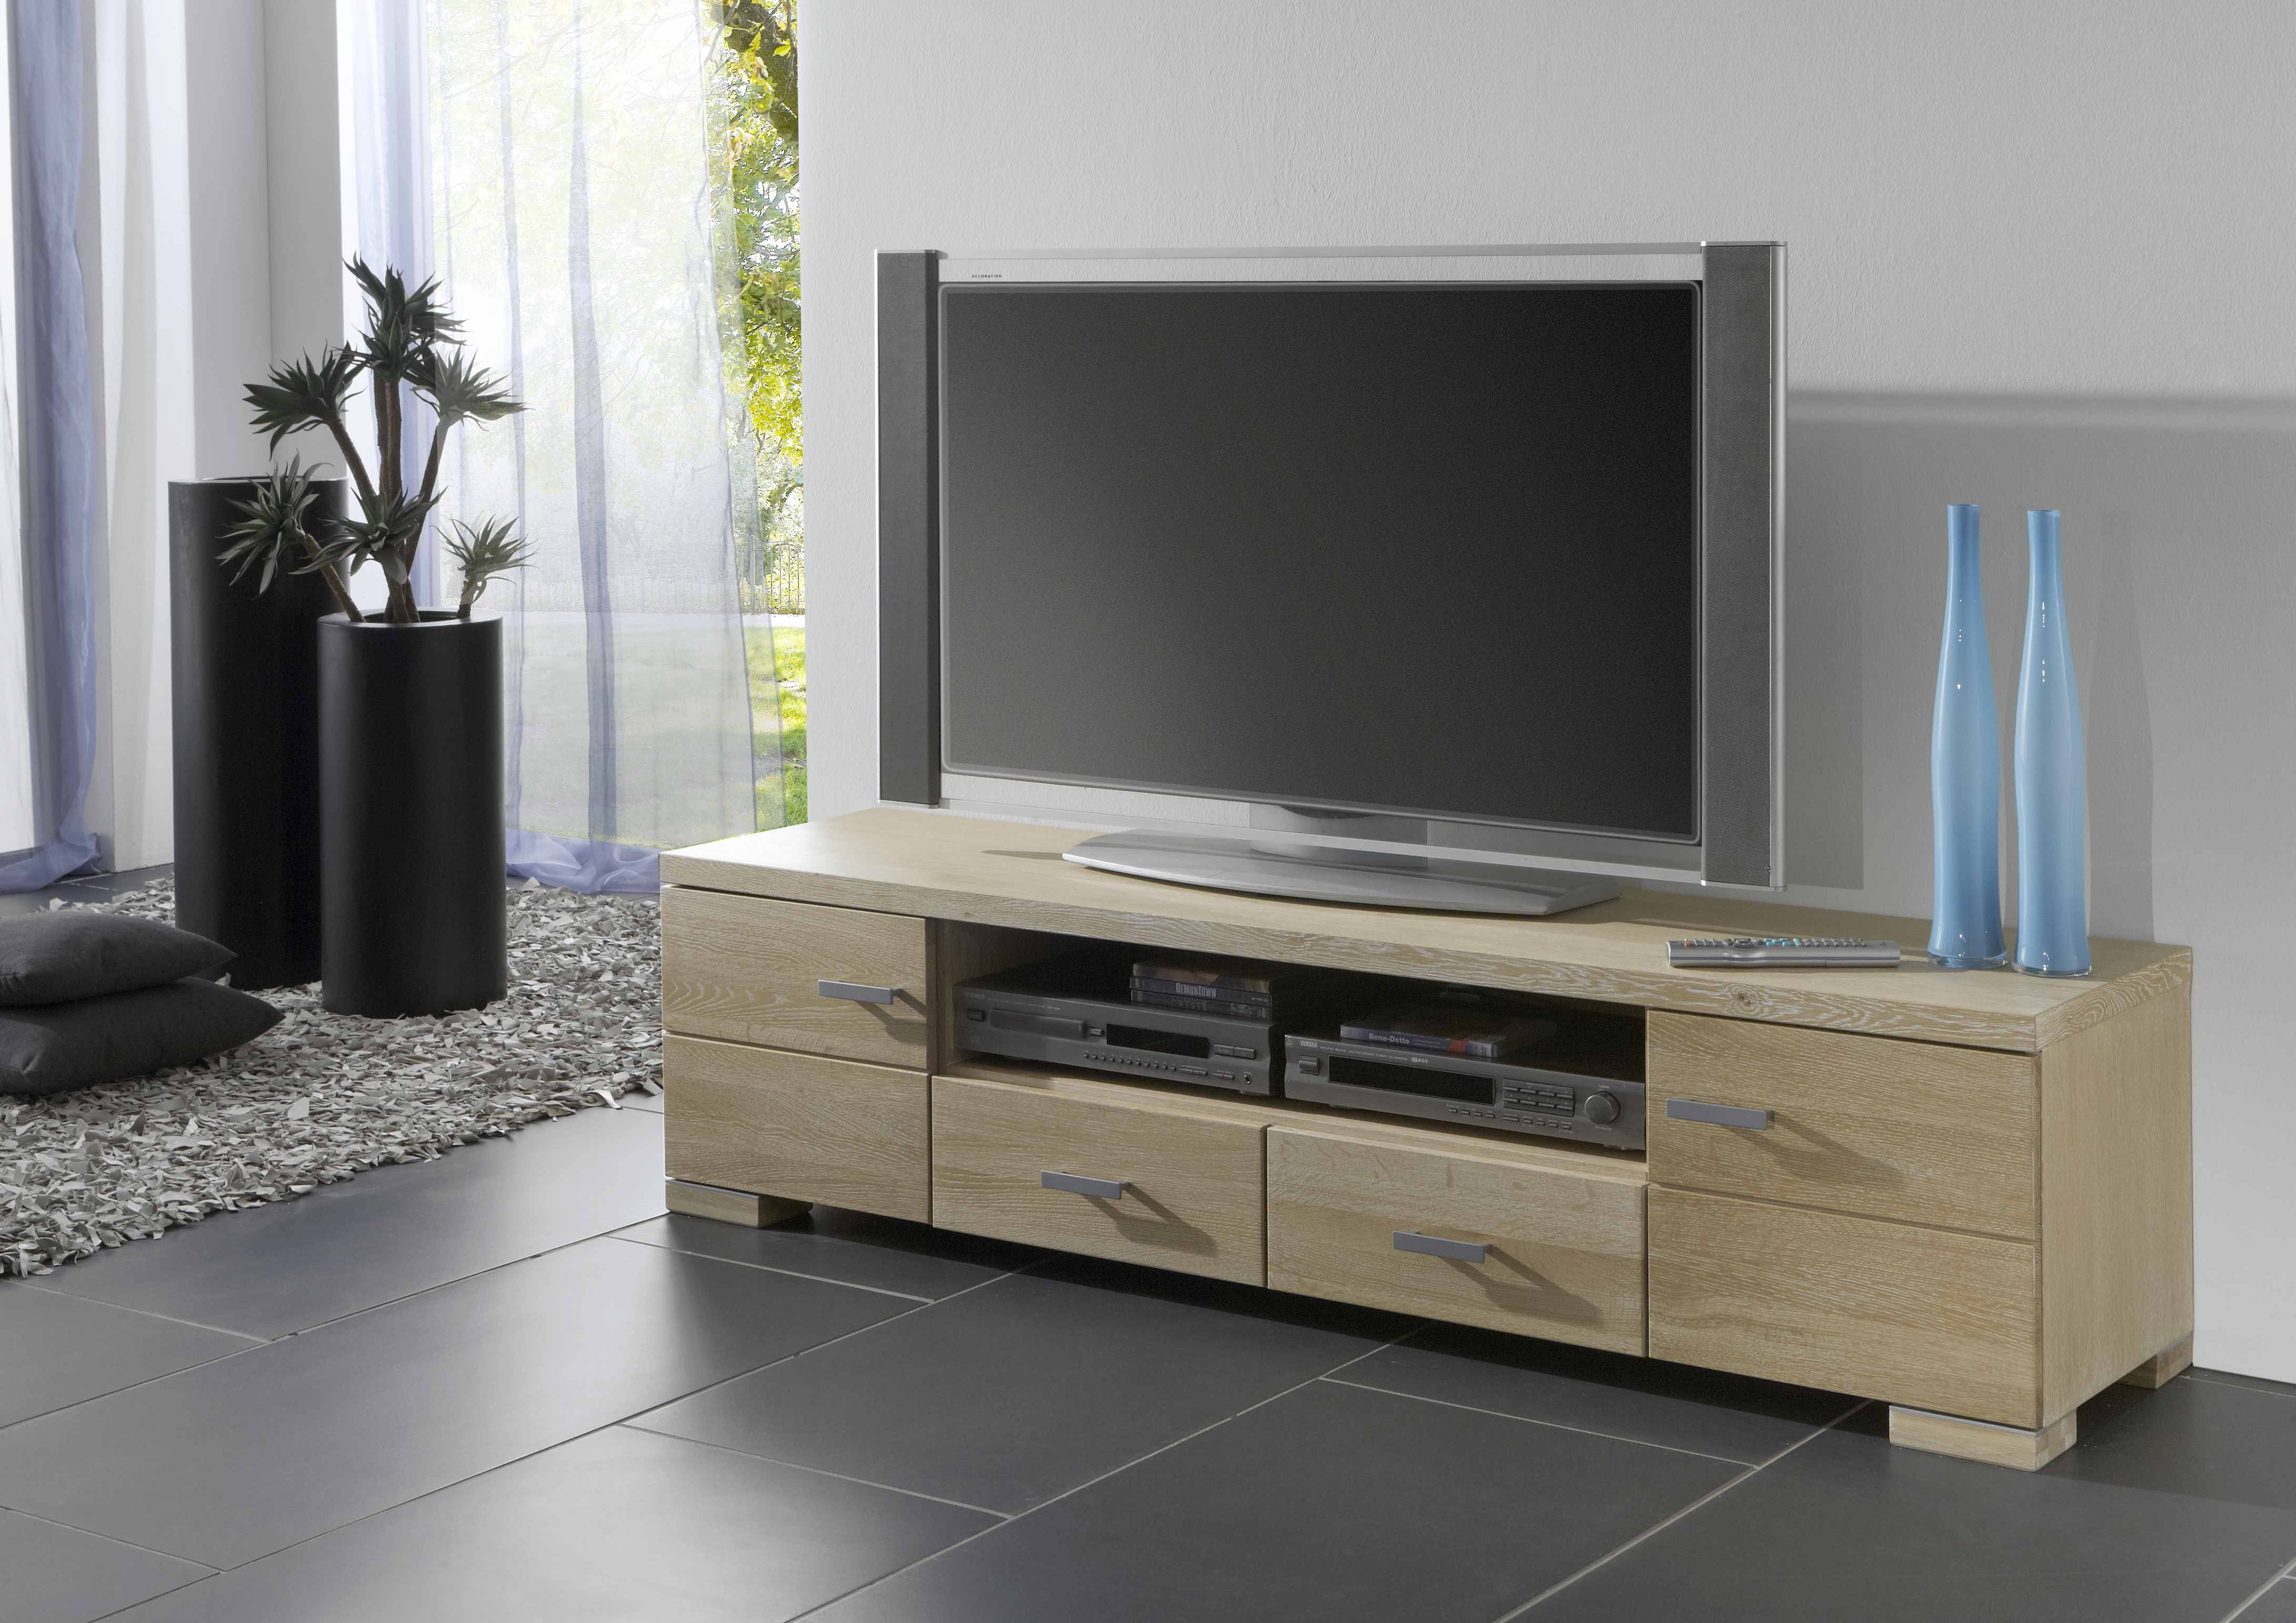 lowboard java tv lowboards tv hifi m bel wohnzimmer m. Black Bedroom Furniture Sets. Home Design Ideas